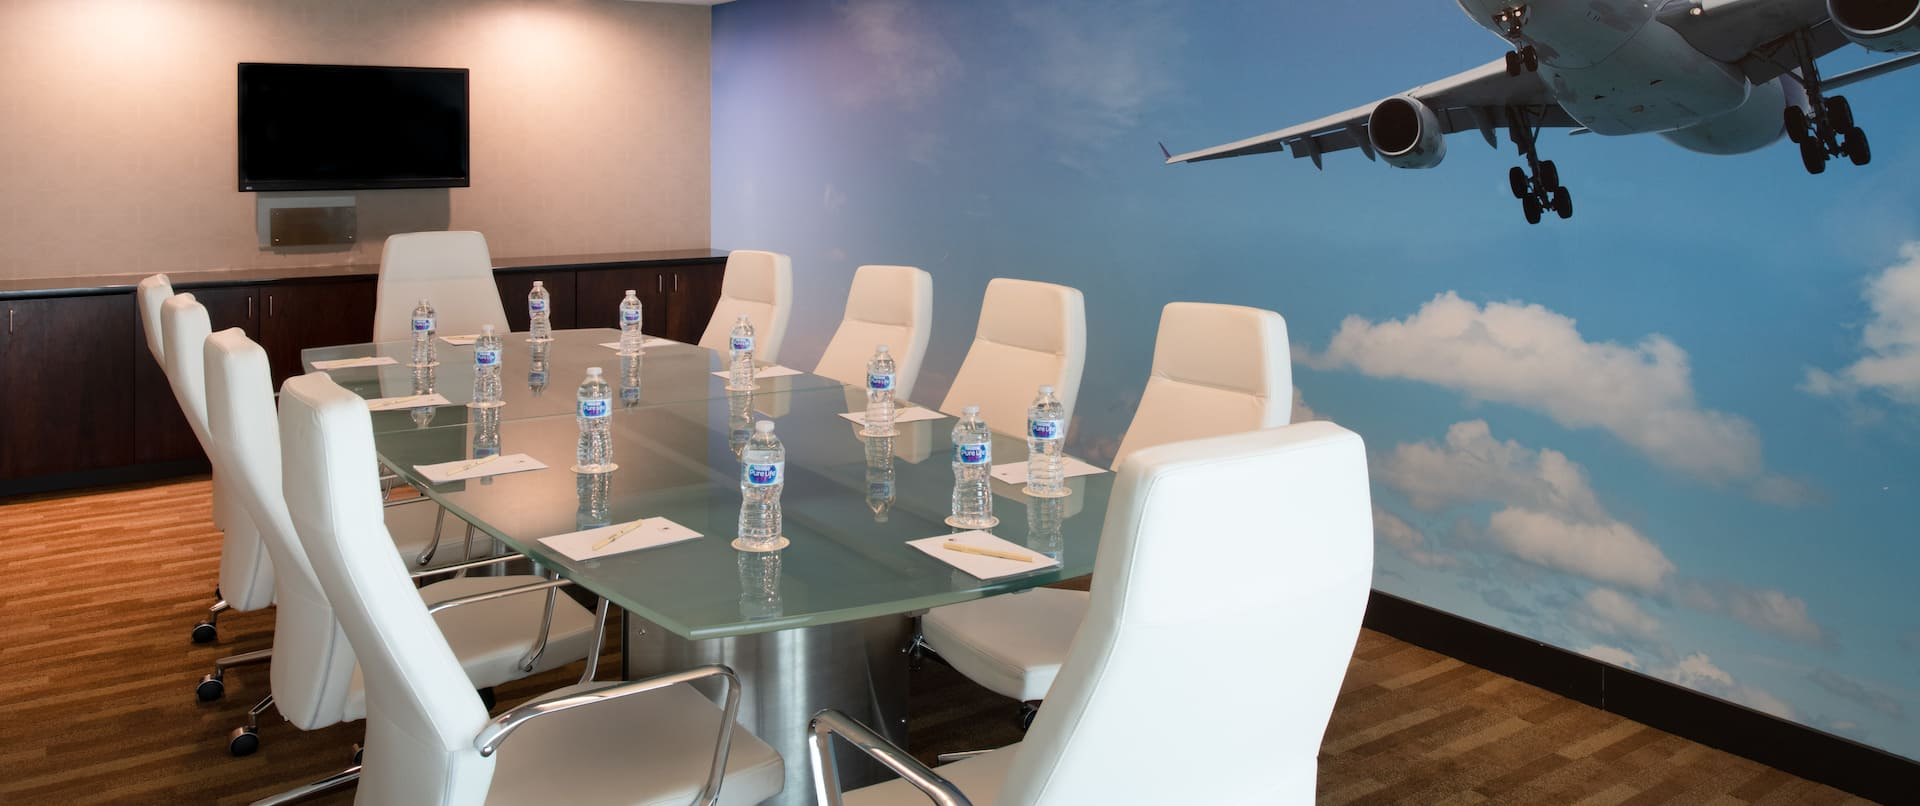 Private Meeting Room with Boardroom Table